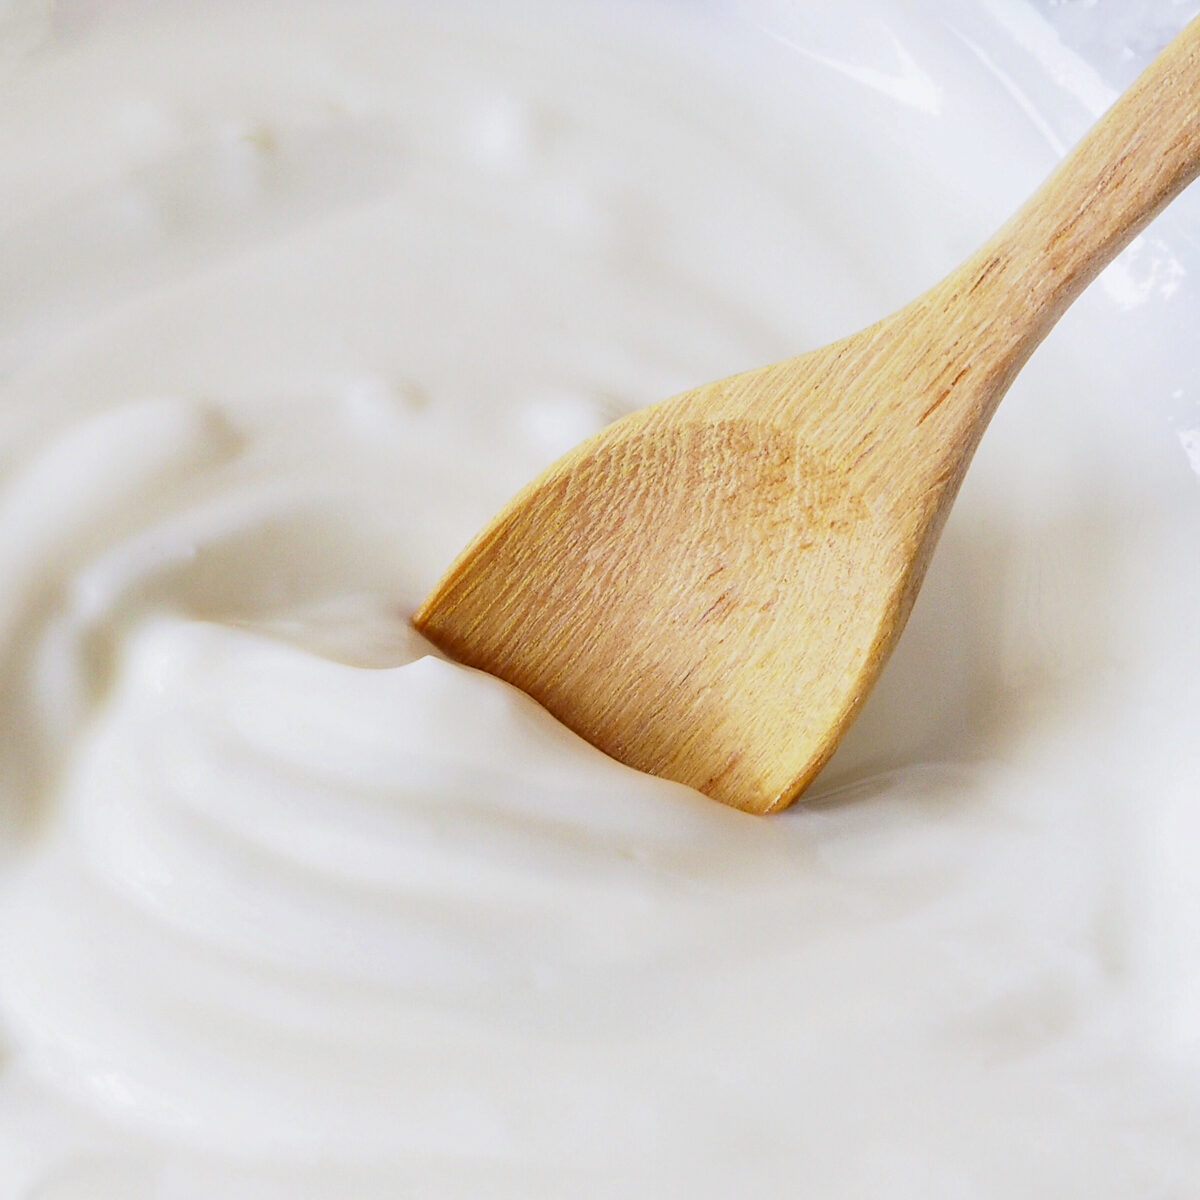 yogurt with a wooden spoon